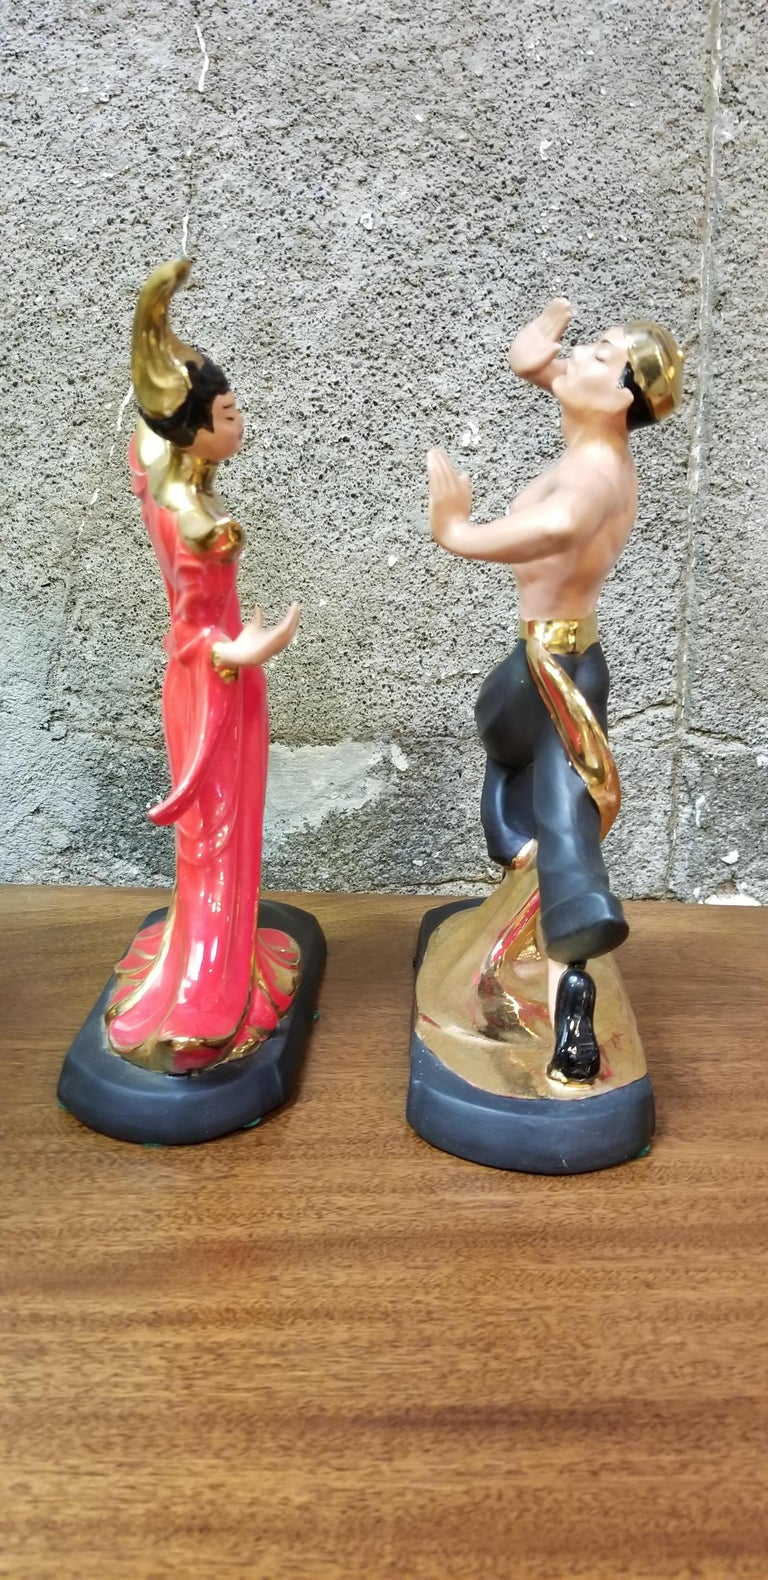 Asian Dancers Ceramic Figurines 1950s a Pair In Good Condition For Sale In Fulton, CA